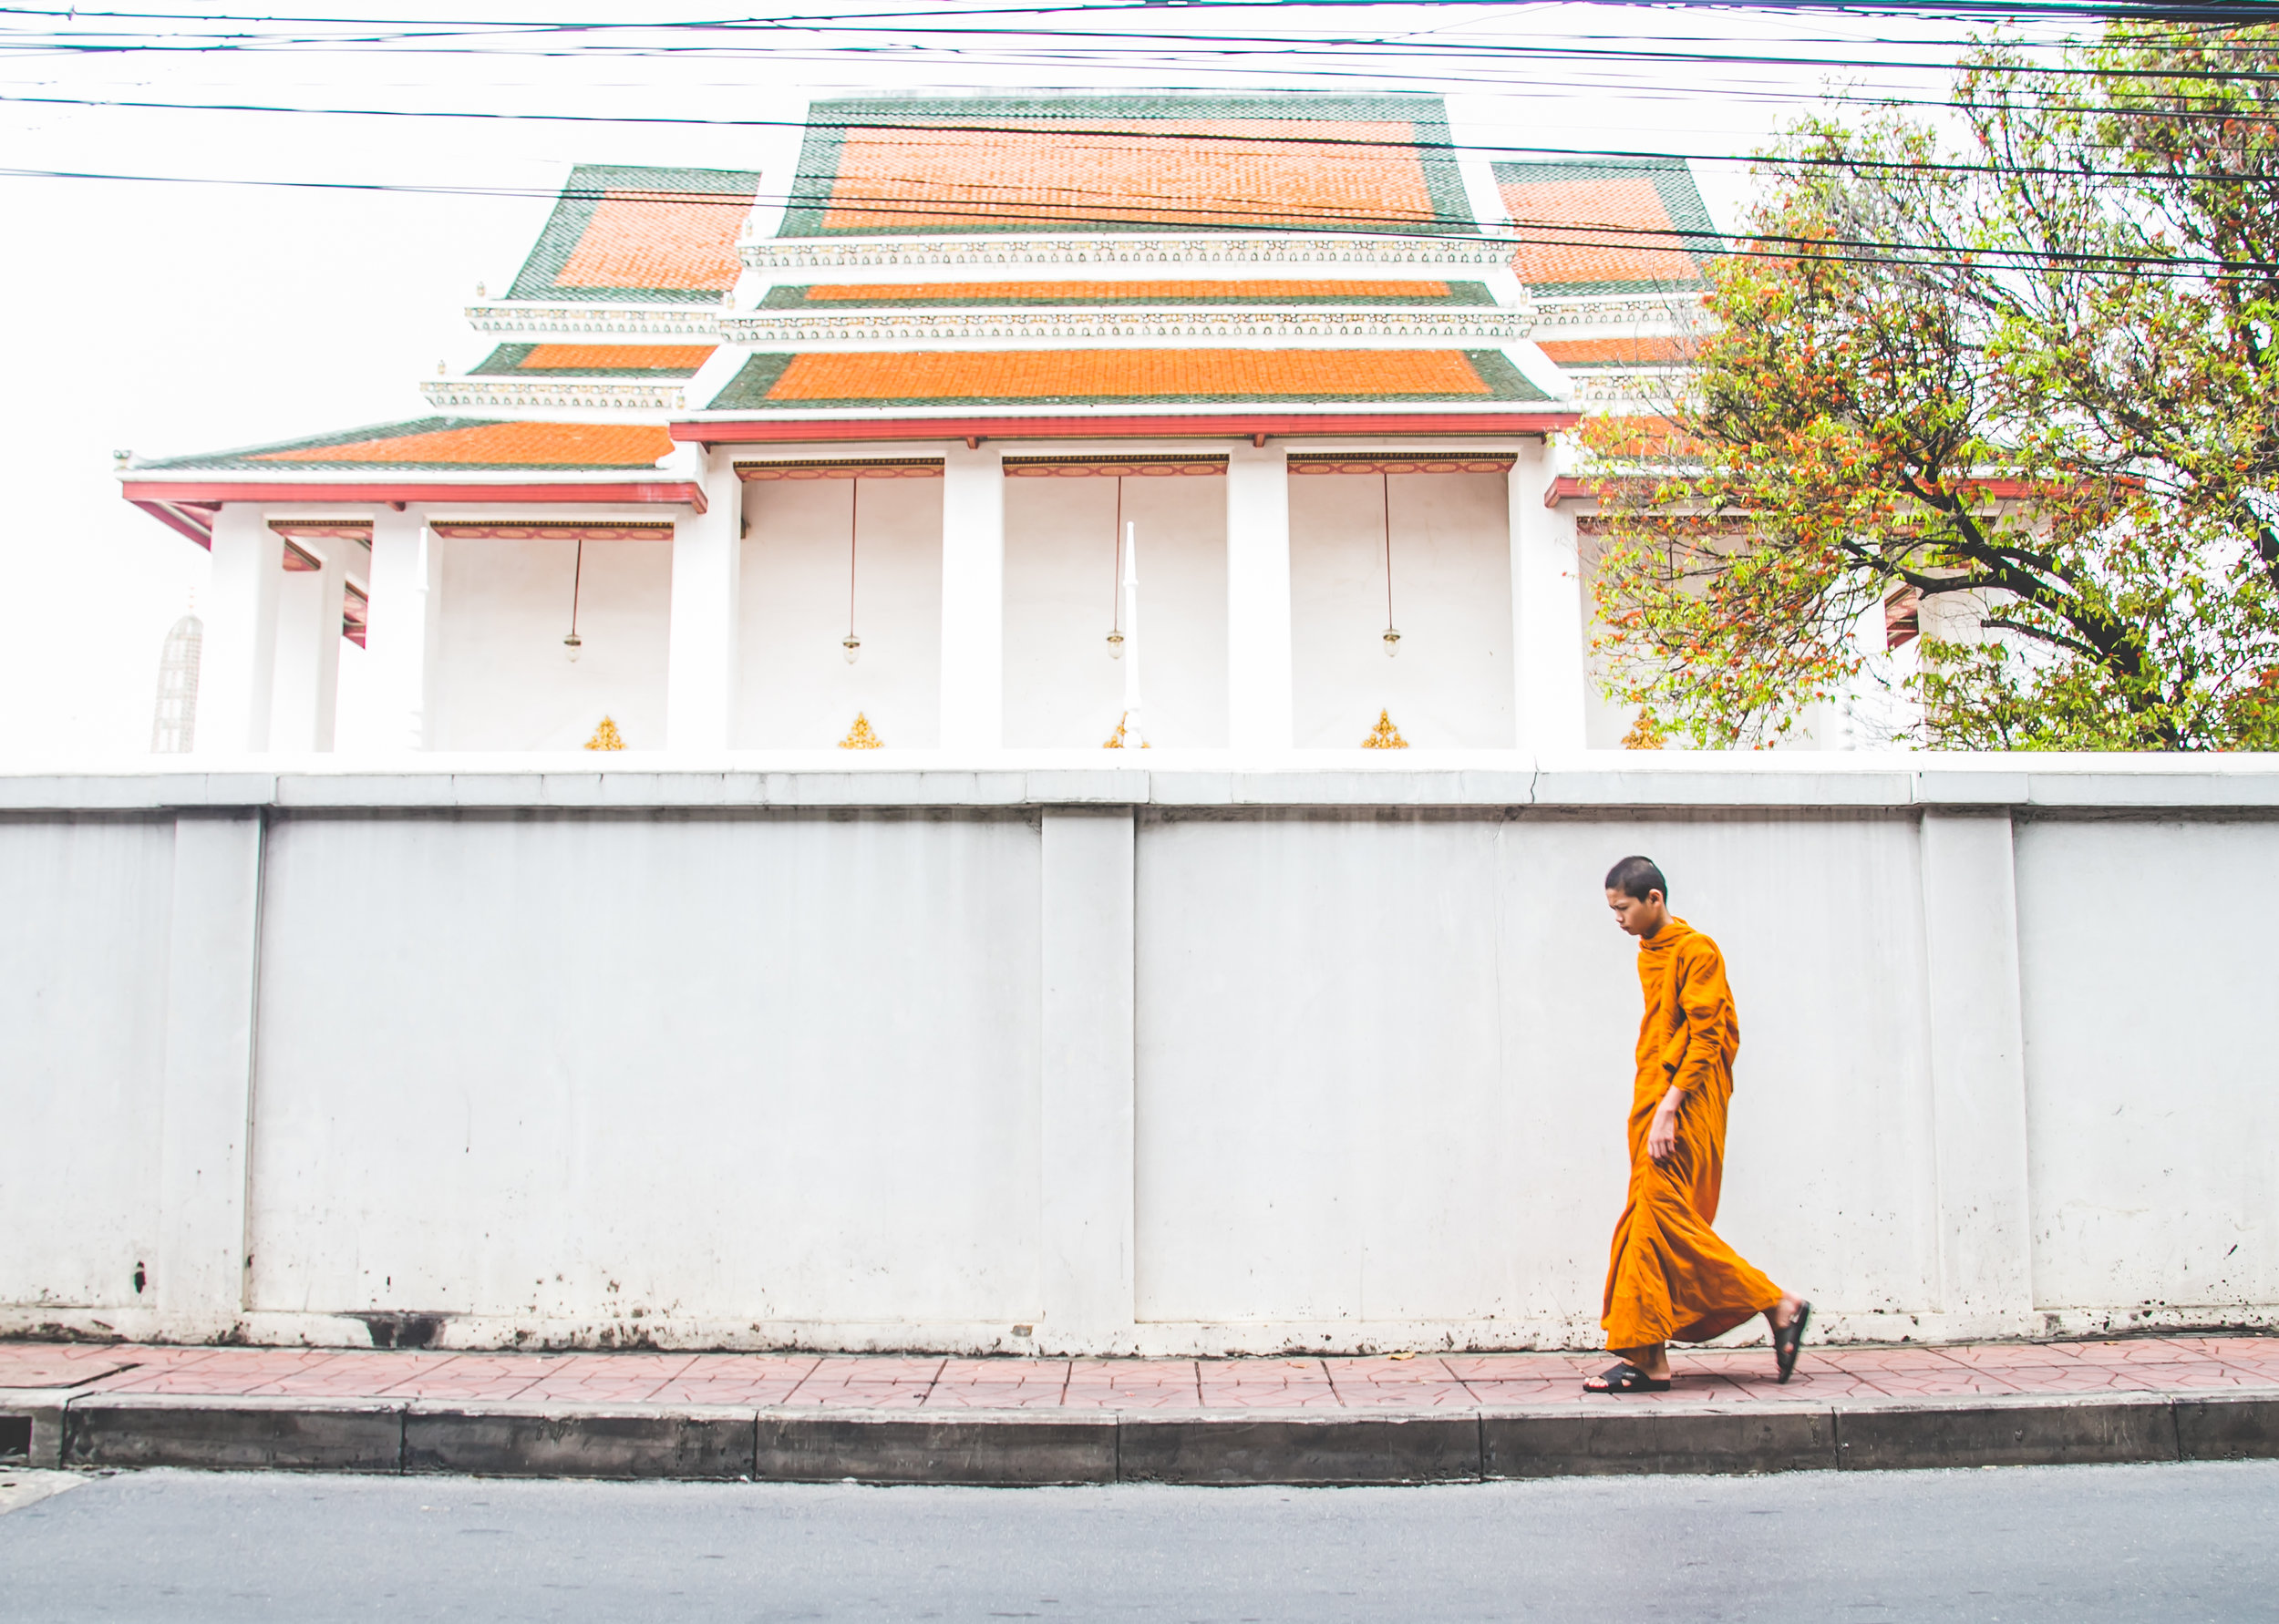 A monk walks outside the Wat Thepthidaram Monastery in central Bangkok.